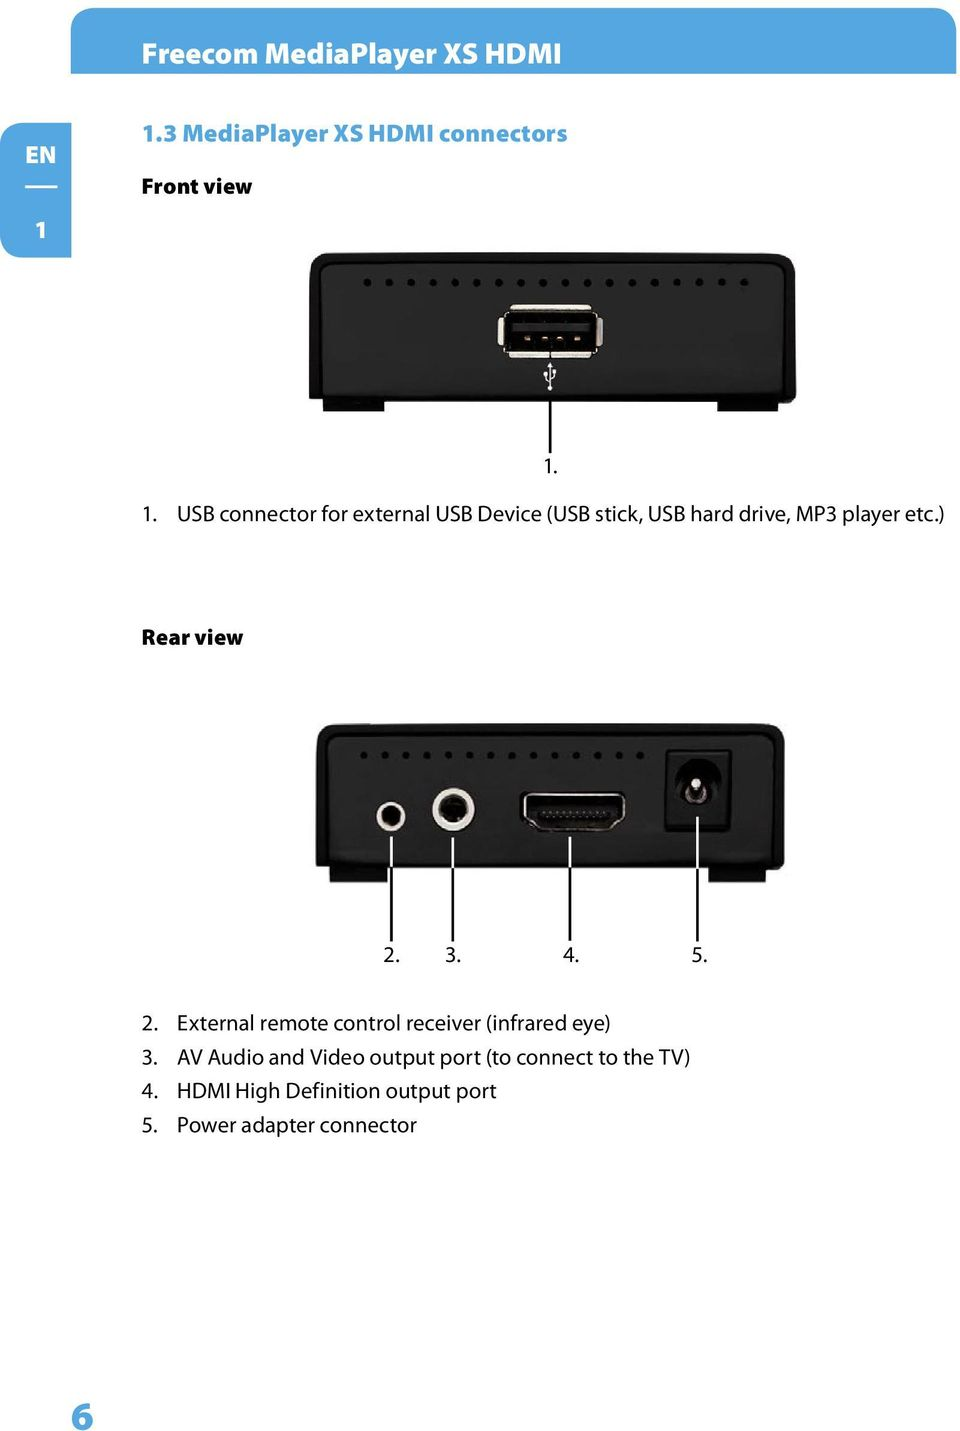 1. 1. USB connector for external USB Device (USB stick, USB hard drive, MP3 player etc.